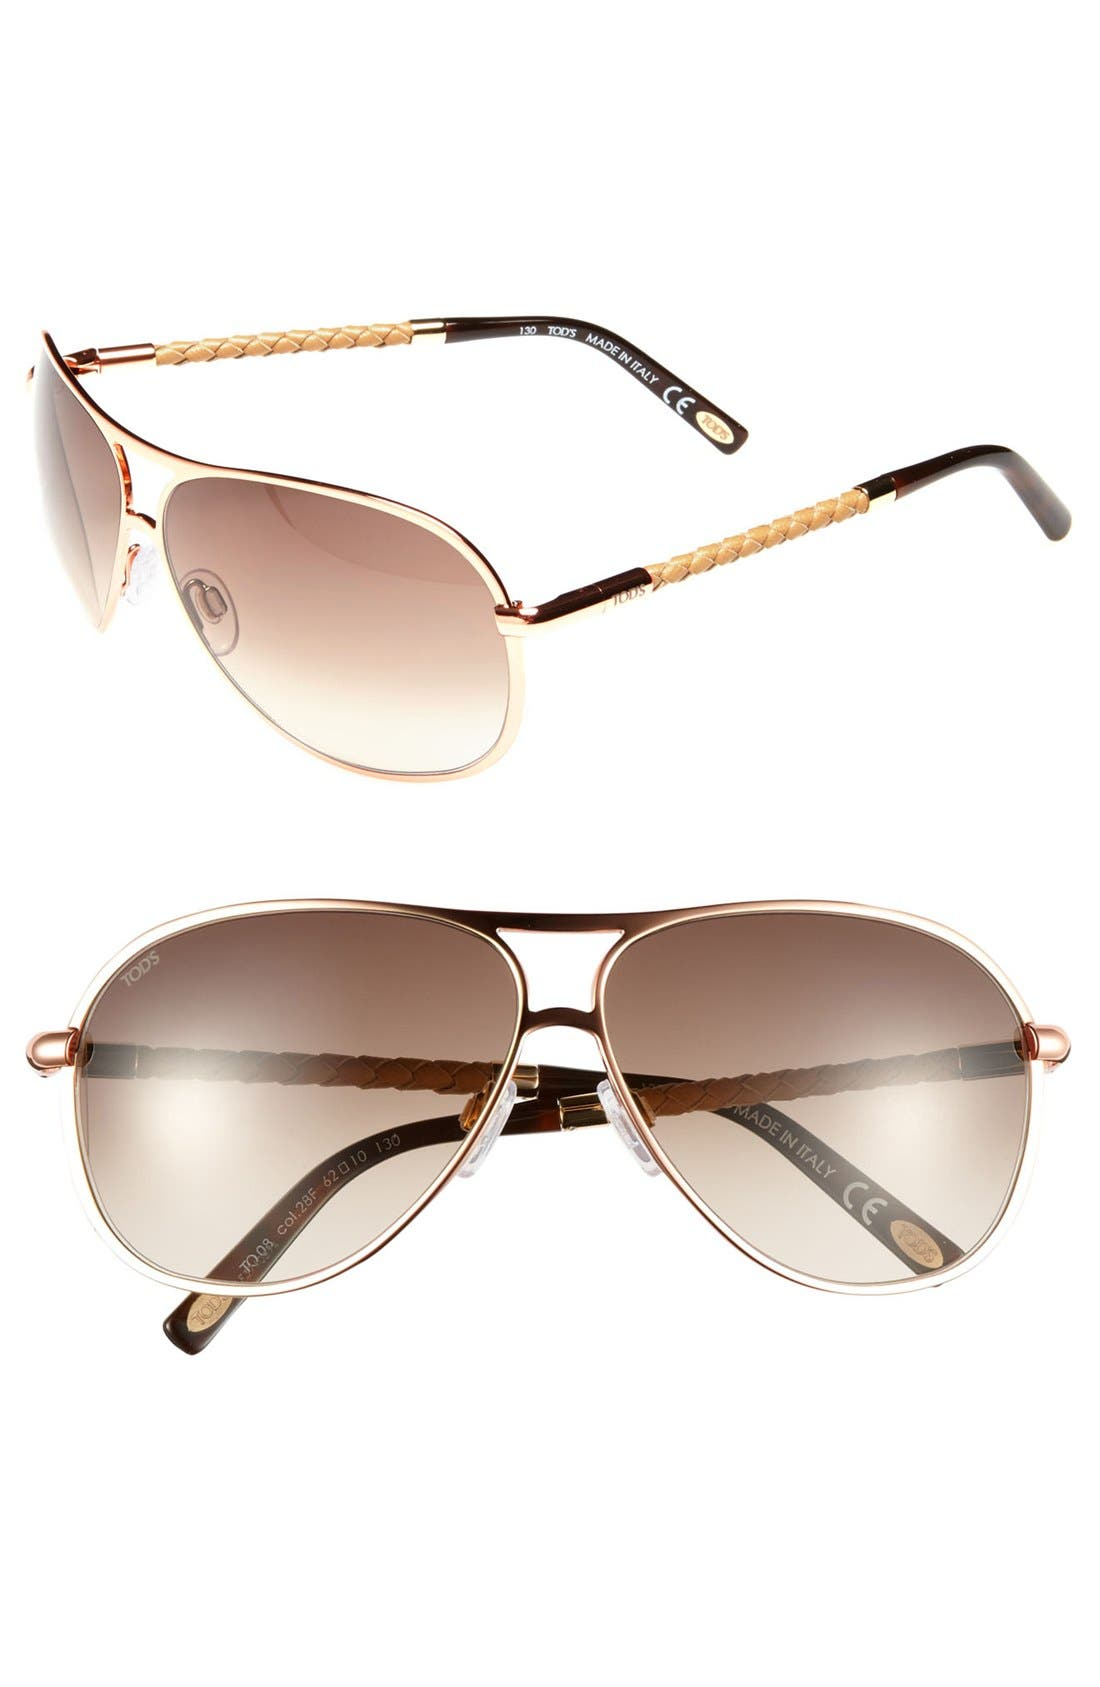 Main Image - Tod's 60mm Woven Leather Temple Aviator Sunglasses